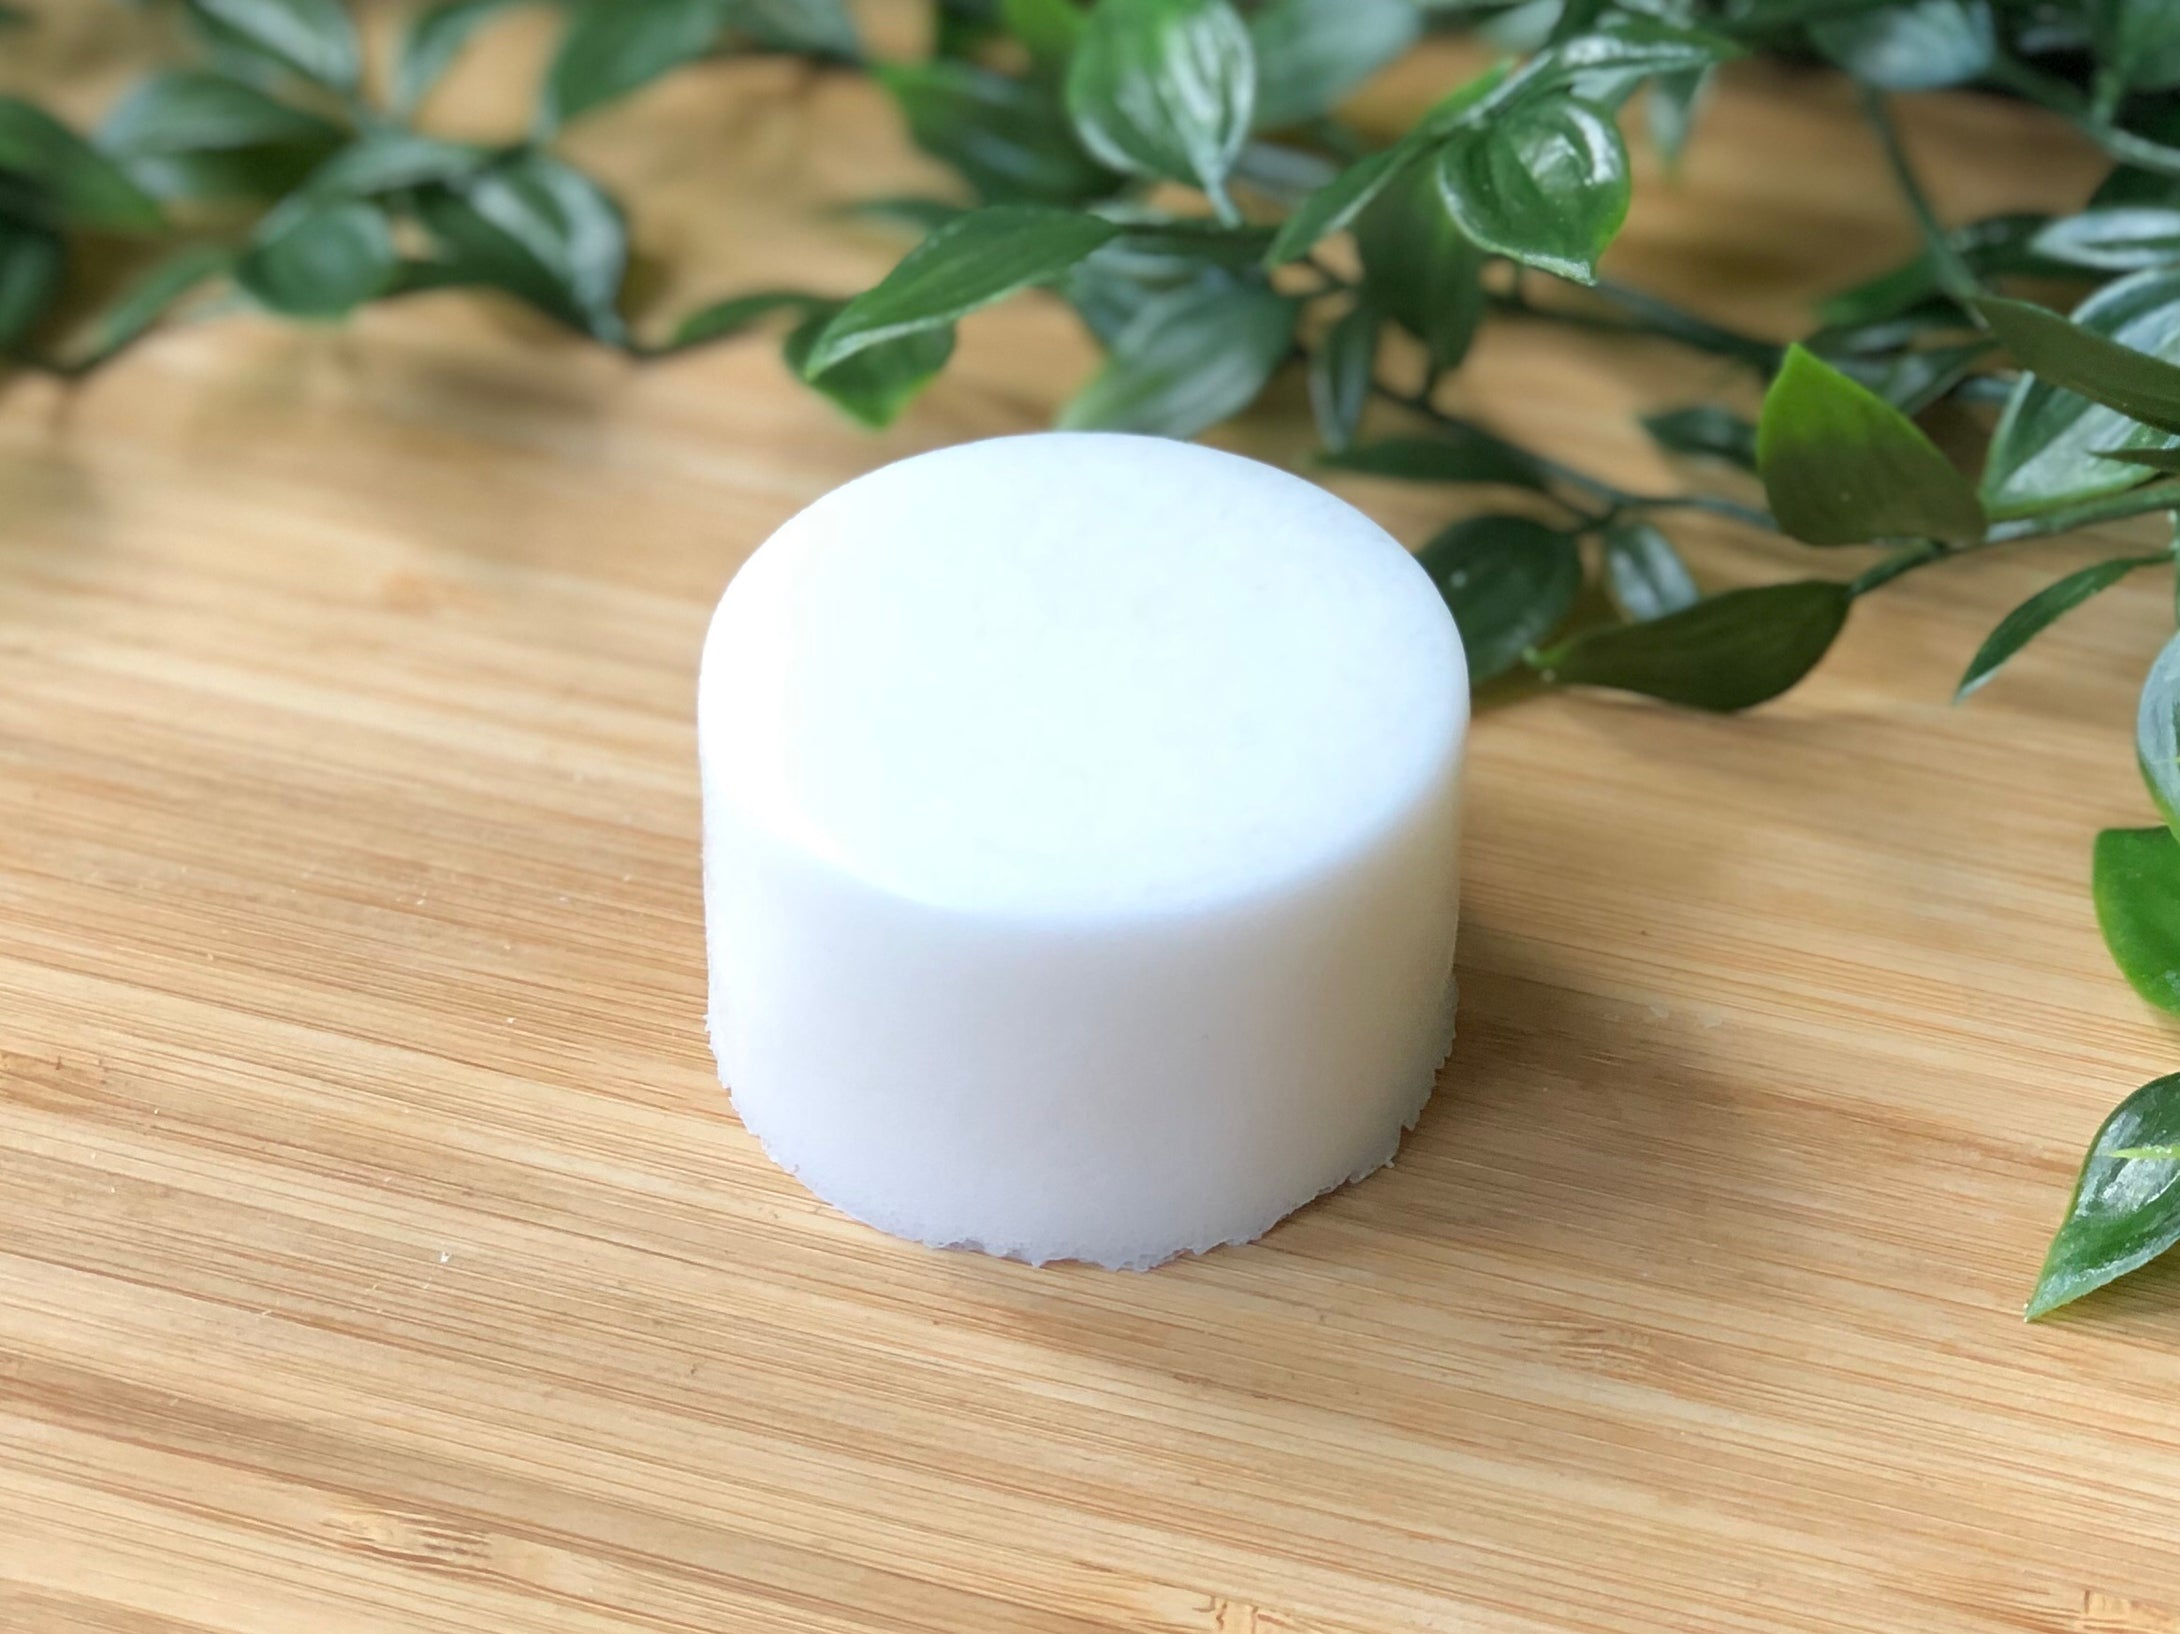 Aloe & Argan Oil, Fragrance Free - Shampoo & Conditioner Bar